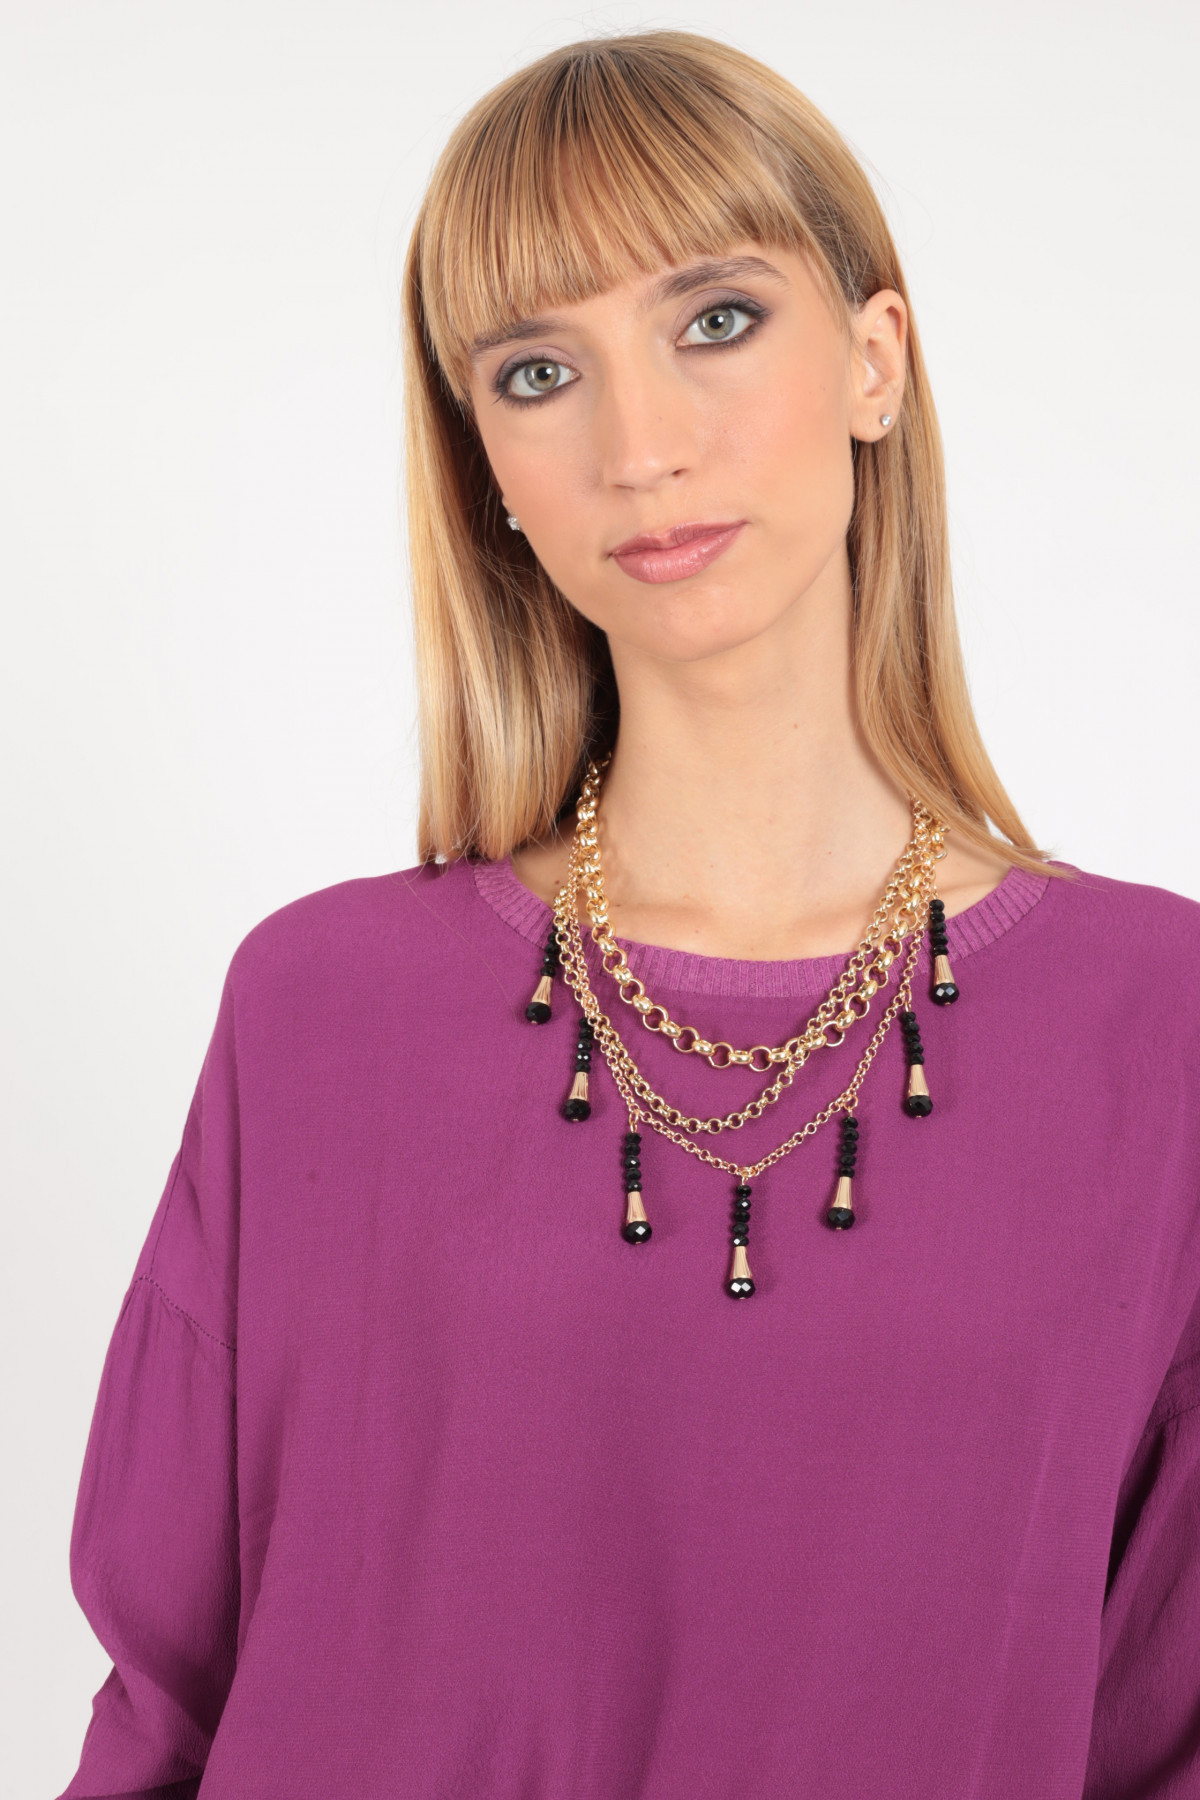 Triple Strand Necklace with Pendants